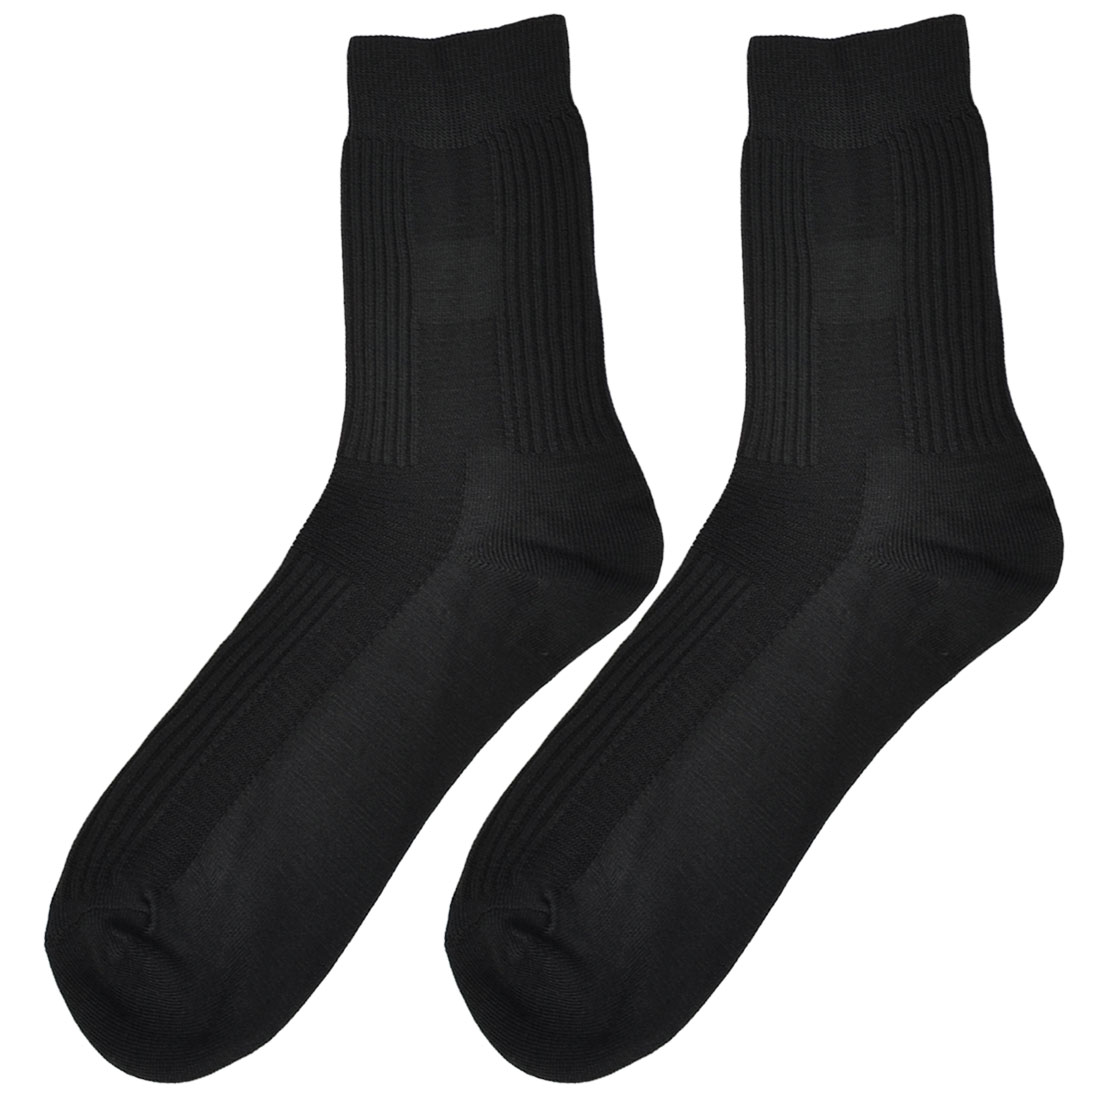 2 Pcs Black Cotton Blends Ribbed Elastic Warm Socks for Men